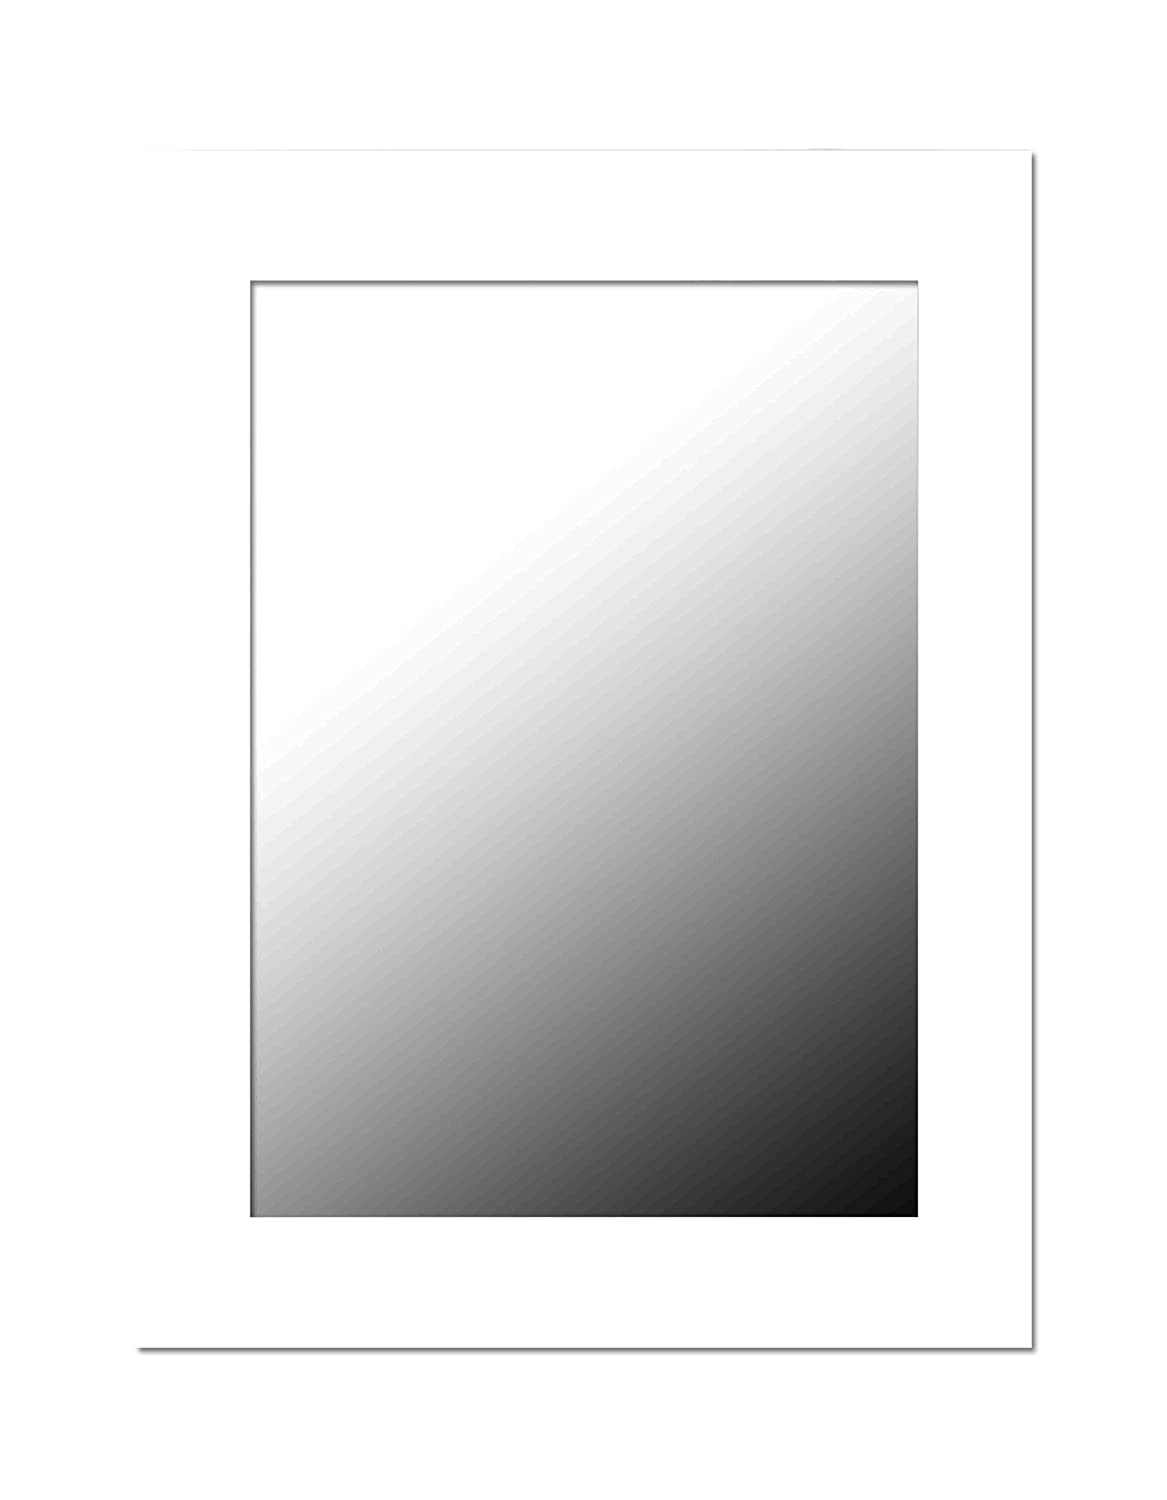 Home Basics Contemporary Rectangle Wall Mirror, Hangs Vertical Or Horizontal, (White)